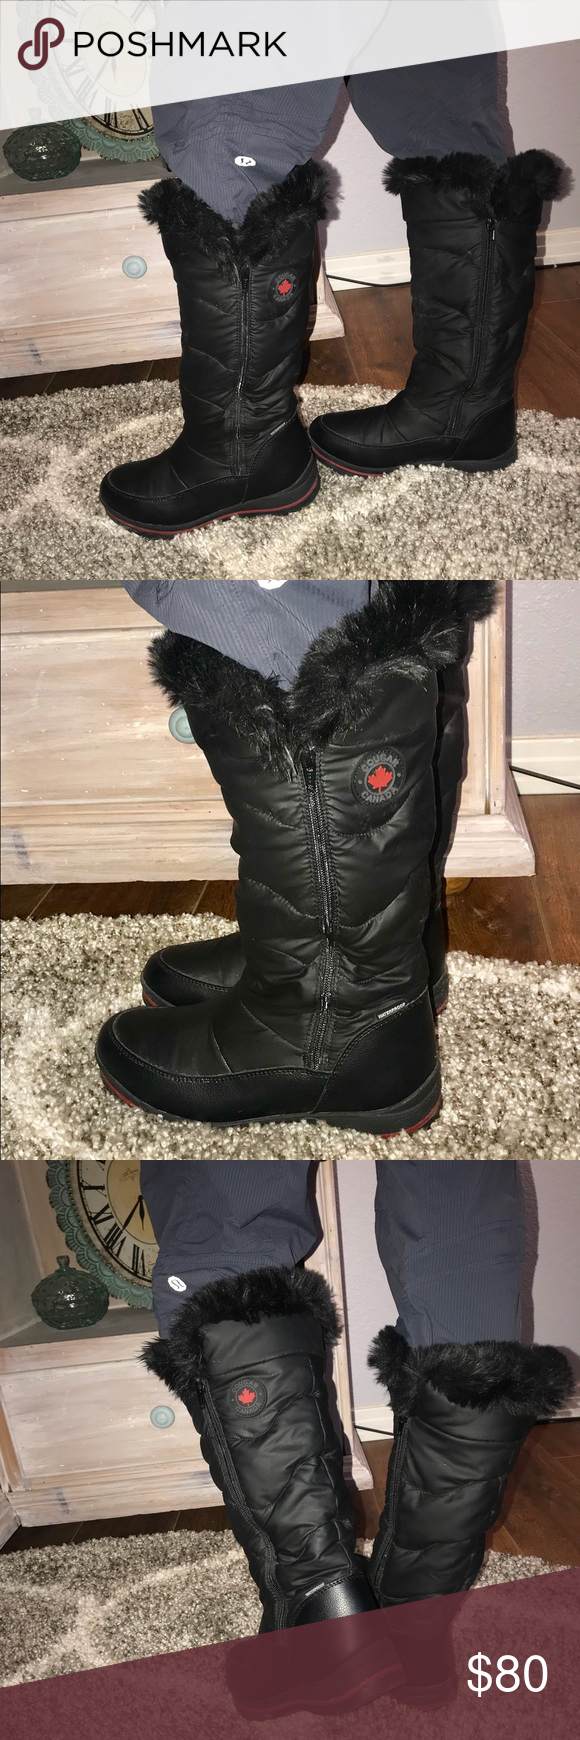 d24777bf846d2 Cougar Canada Bistro Tall Winter Snow Boots 9 Cougar Canada Tall Snow Boots  Woman's 9 Gently worn a handful of times Cougar Canada Shoes Winter & Rain  Boots